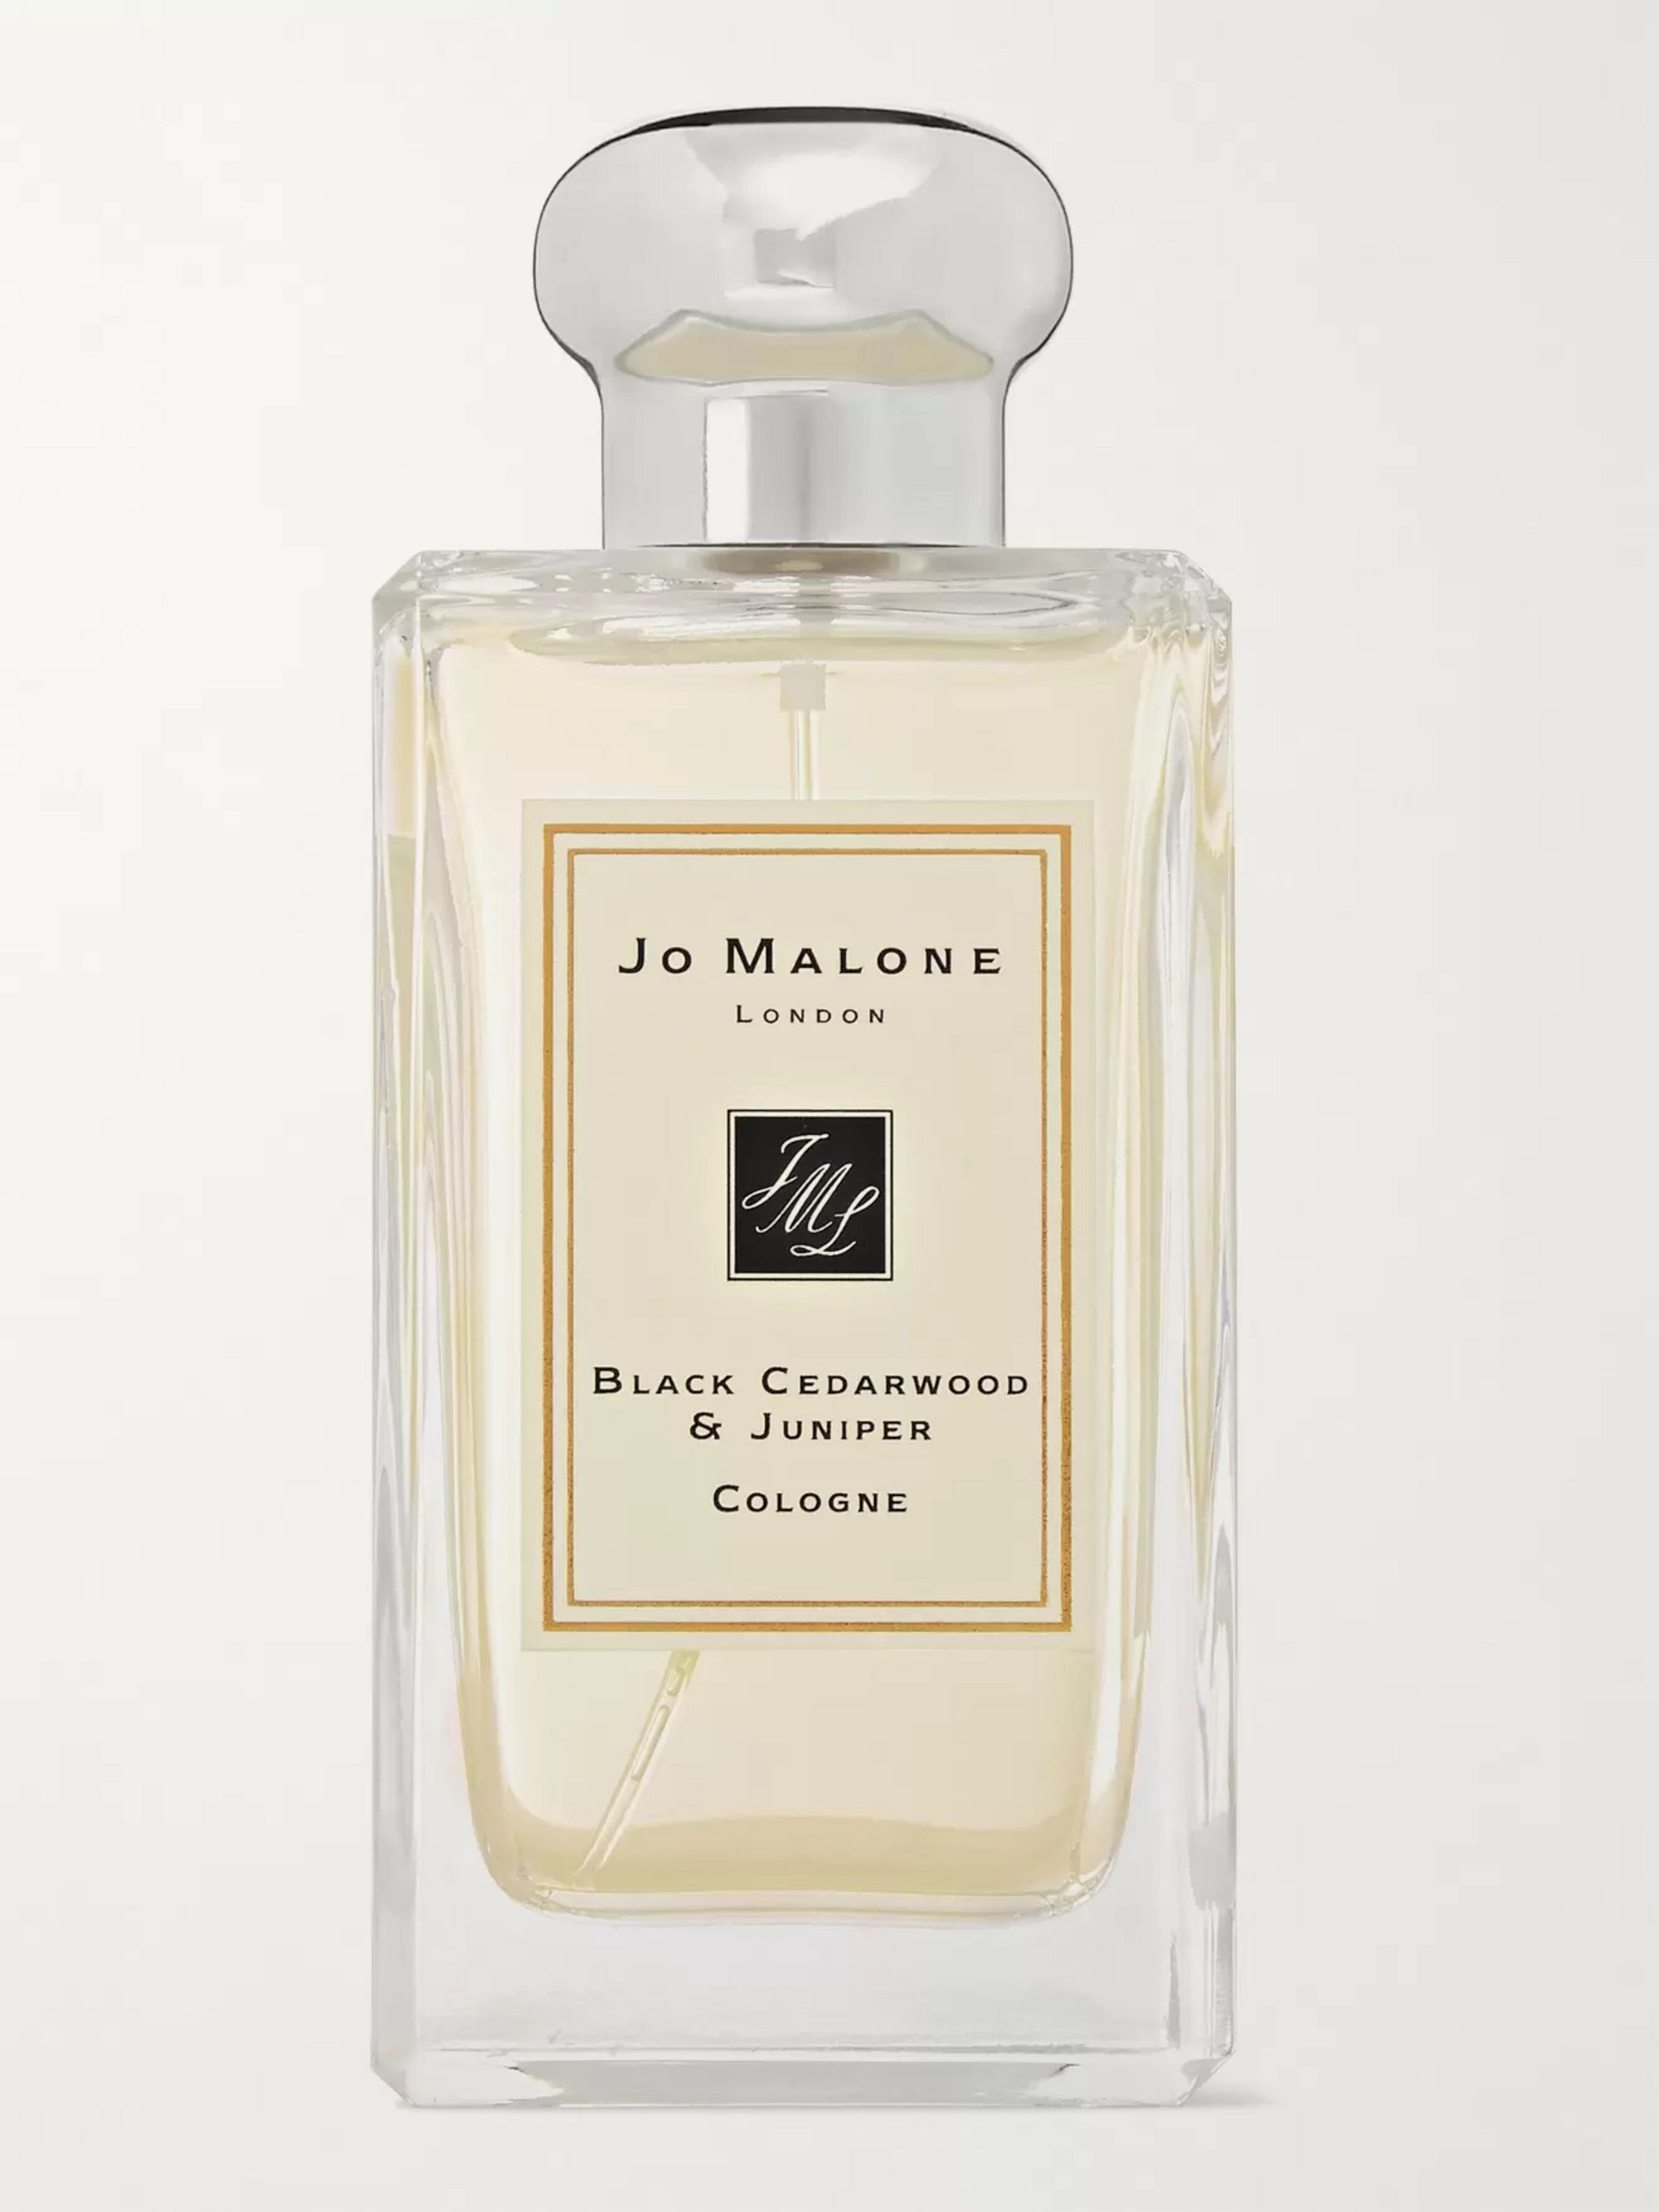 Jo Malone London Black Cedarwood & Juniper Cologne, 100ml